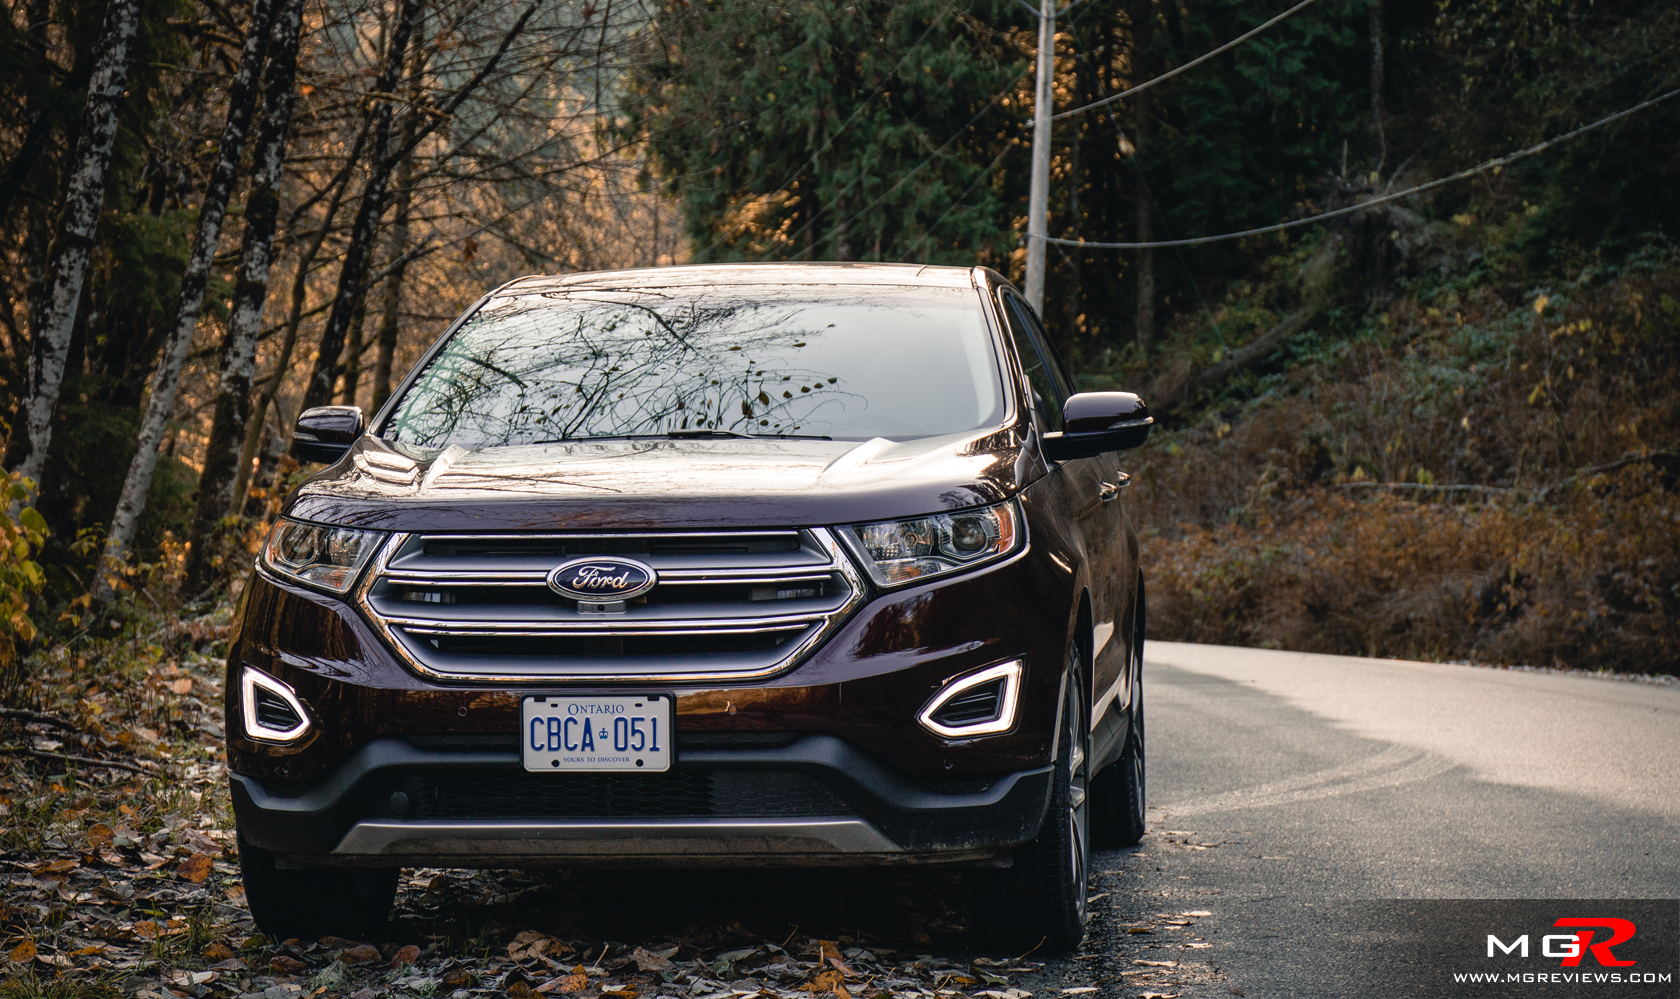 The Ford Edge Is A Two Row Suv But It Features Much More Interior Room Than A More Traditional Compact Suv Such As The Toyota Rav Or Honda Cr V